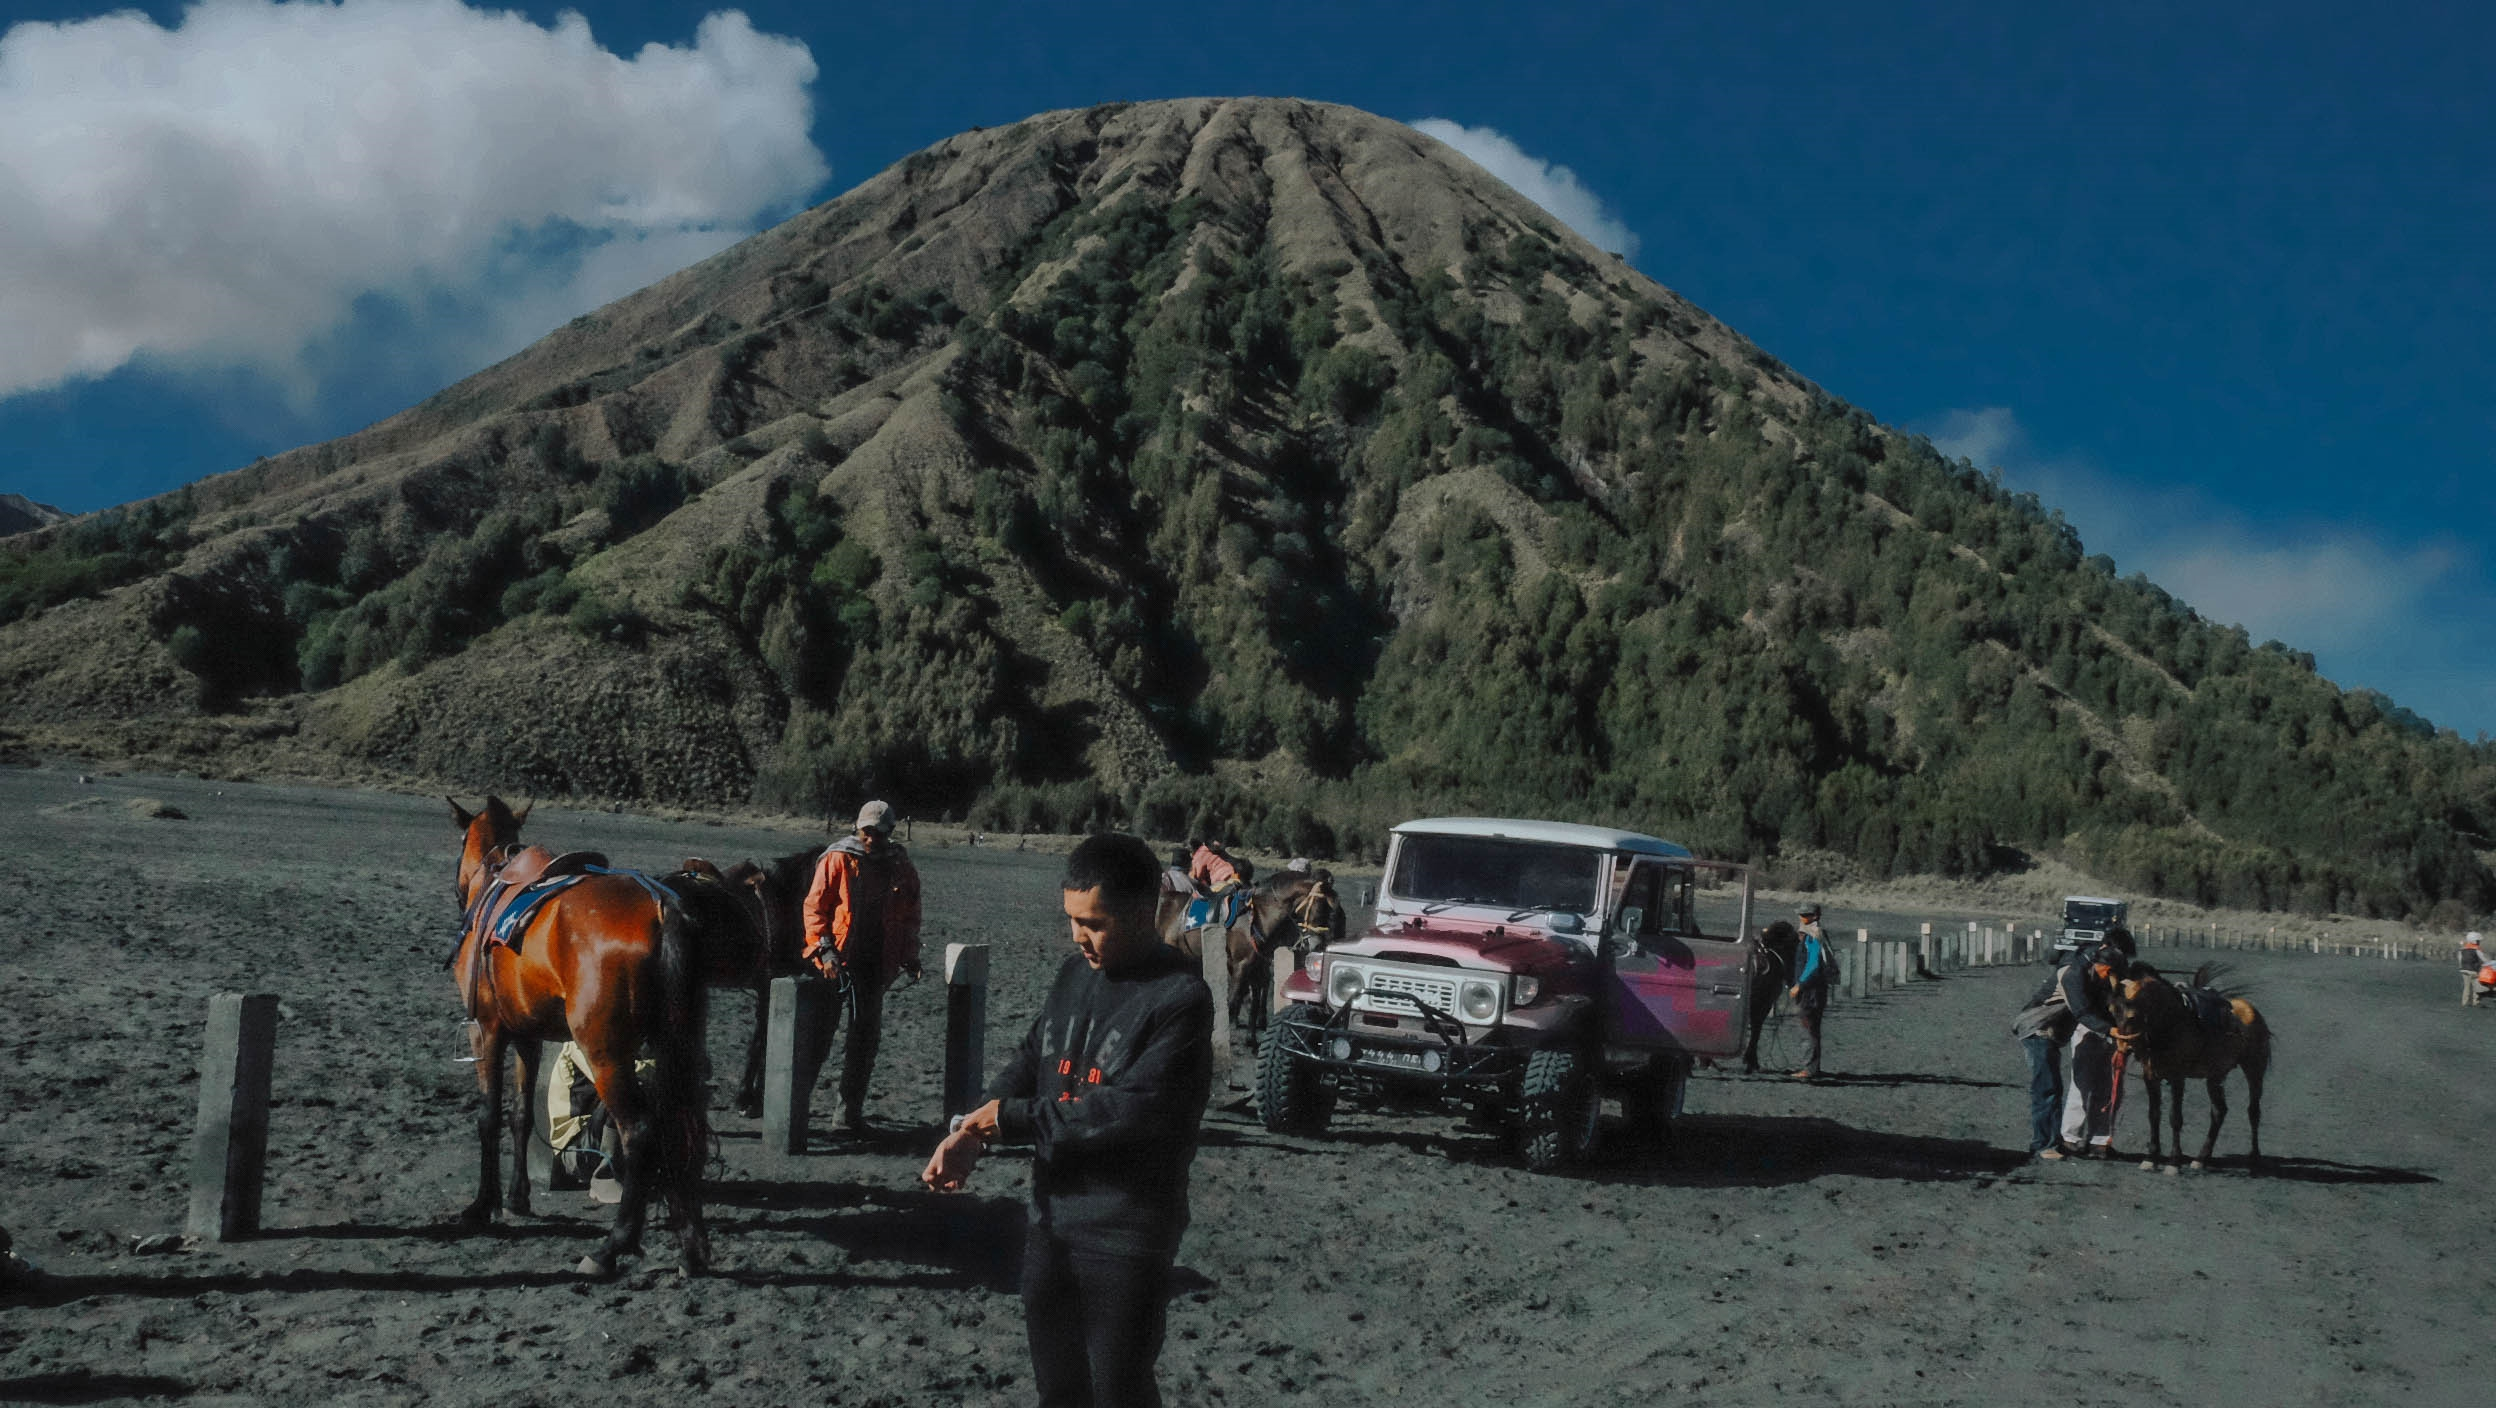 Den Indonesia, cham chan toi mieng nui lua Bromo hinh anh 23